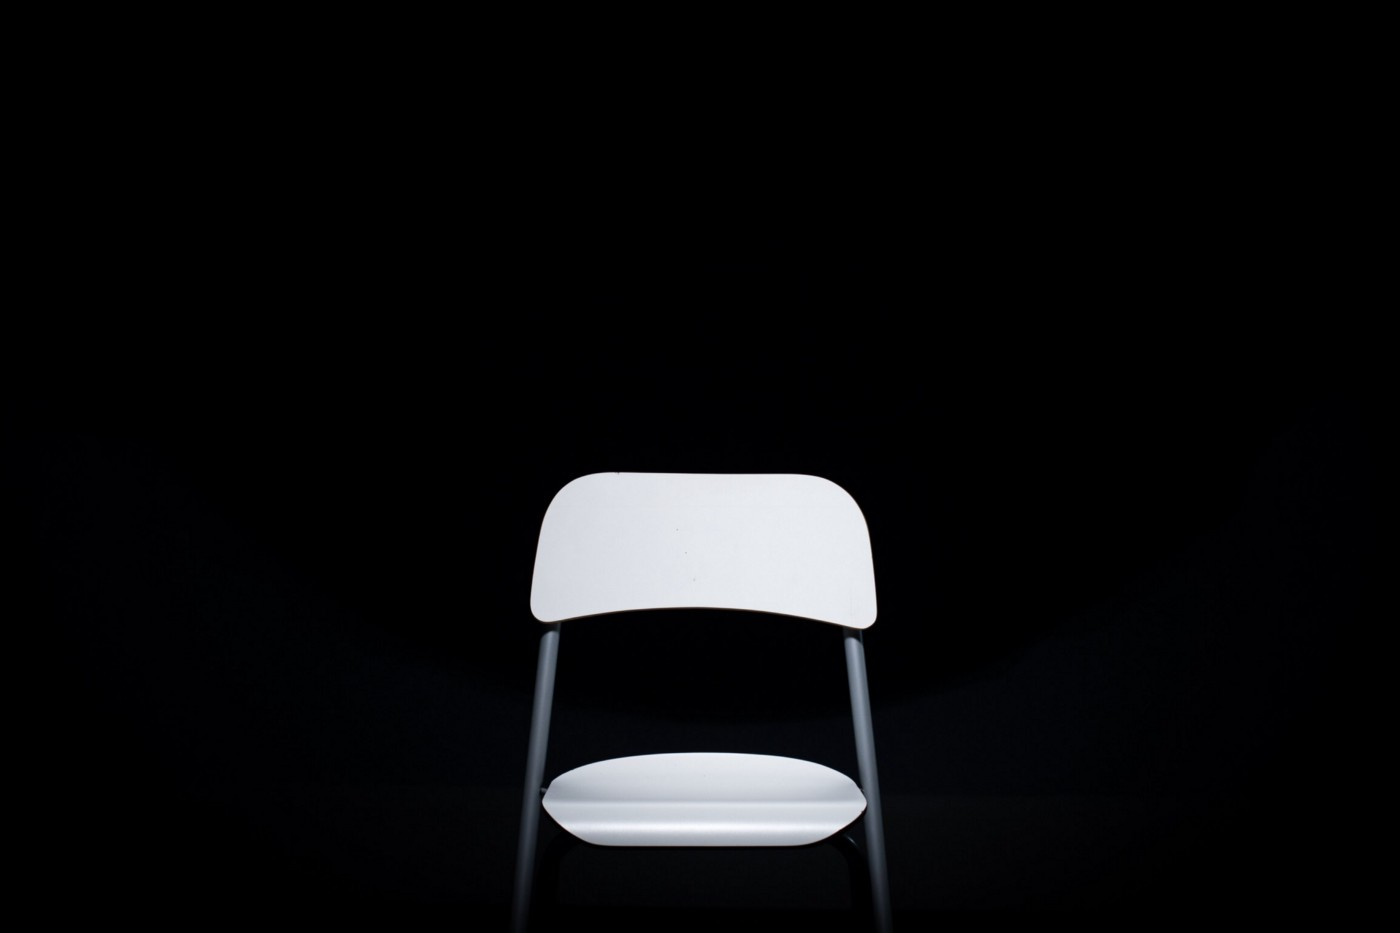 The chair is just there, go get it.